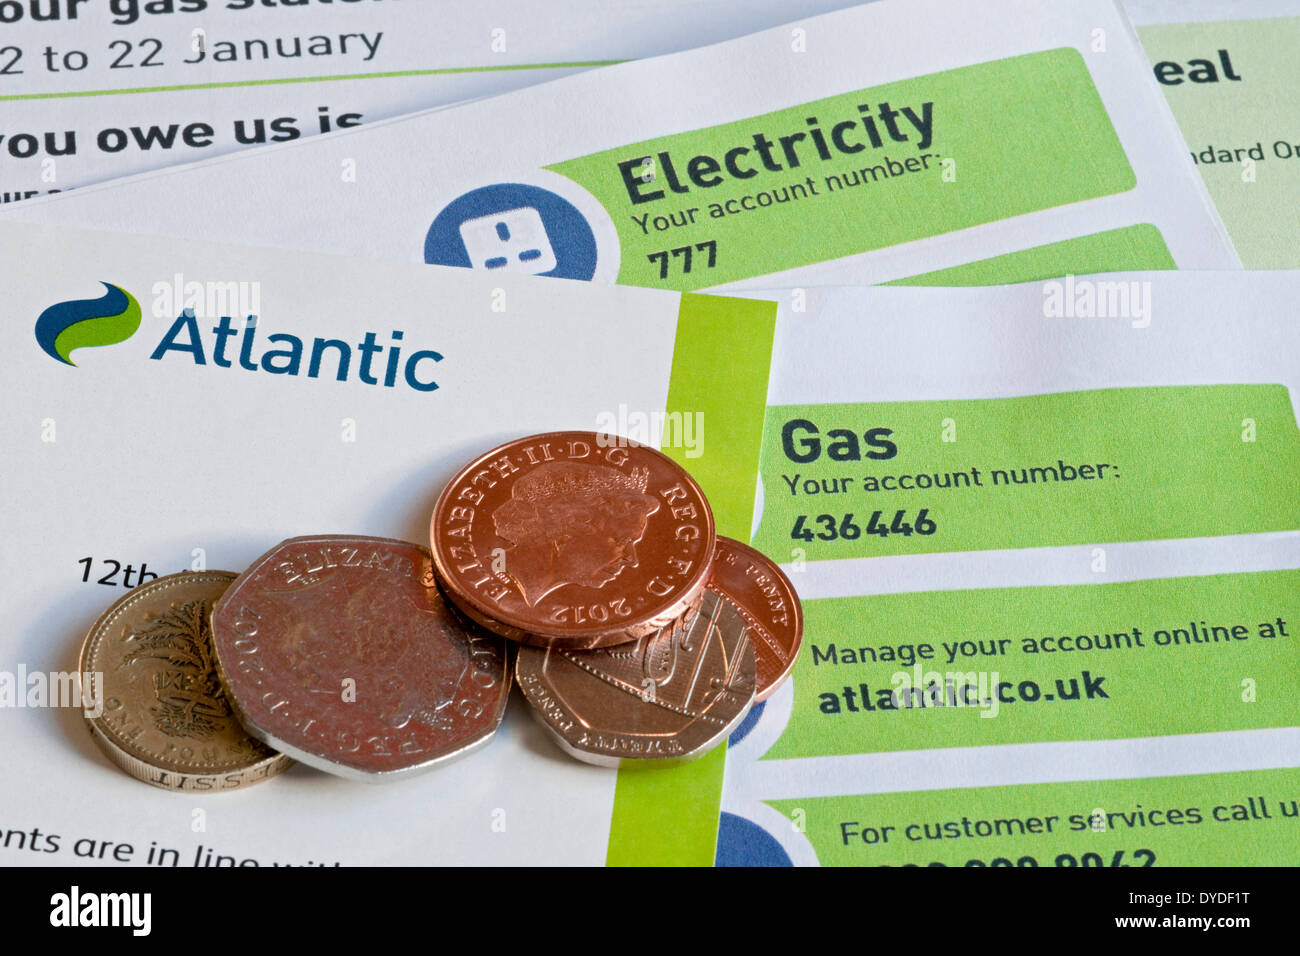 Atlantic Gas and Electricity fuel bills. Stock Photo